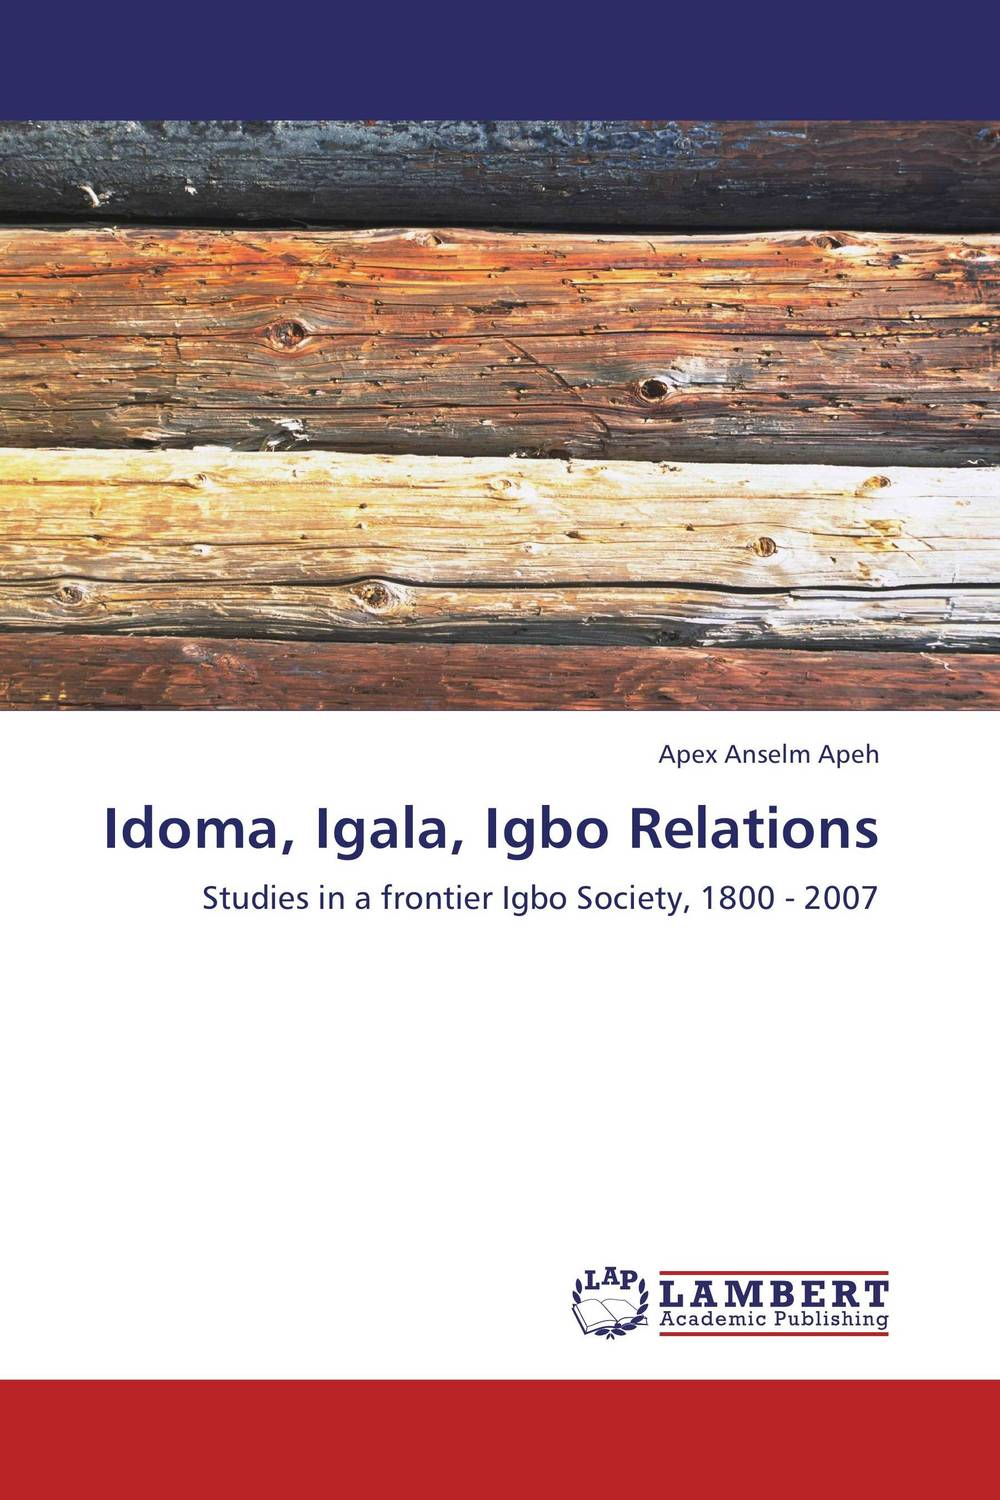 Idoma, Igala, Igbo Relations folk media and cultural values among the igala